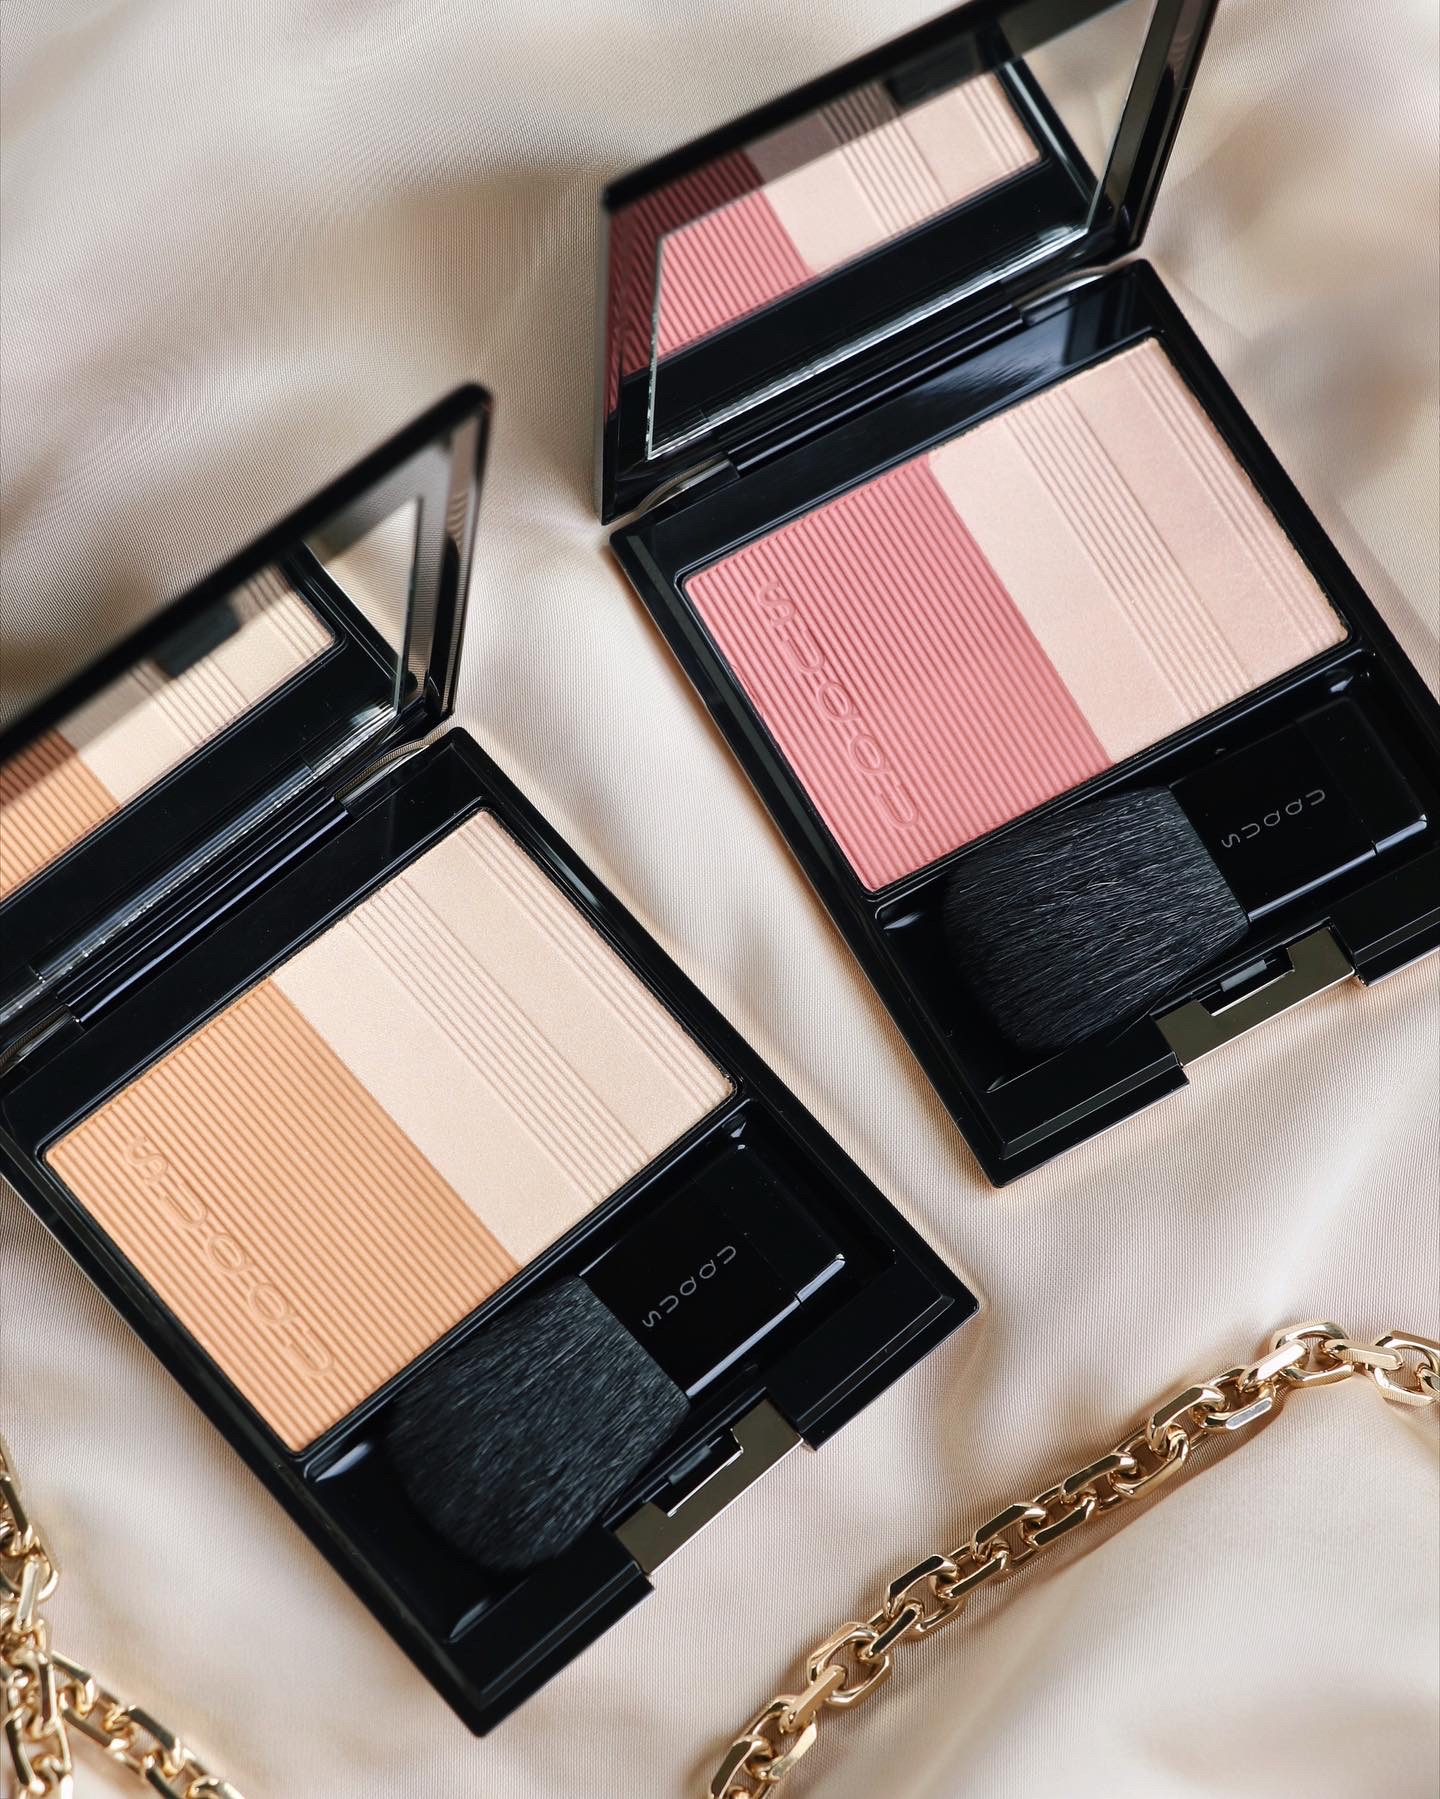 SUQQU 2020 Holiday Collection Pure Color Blush